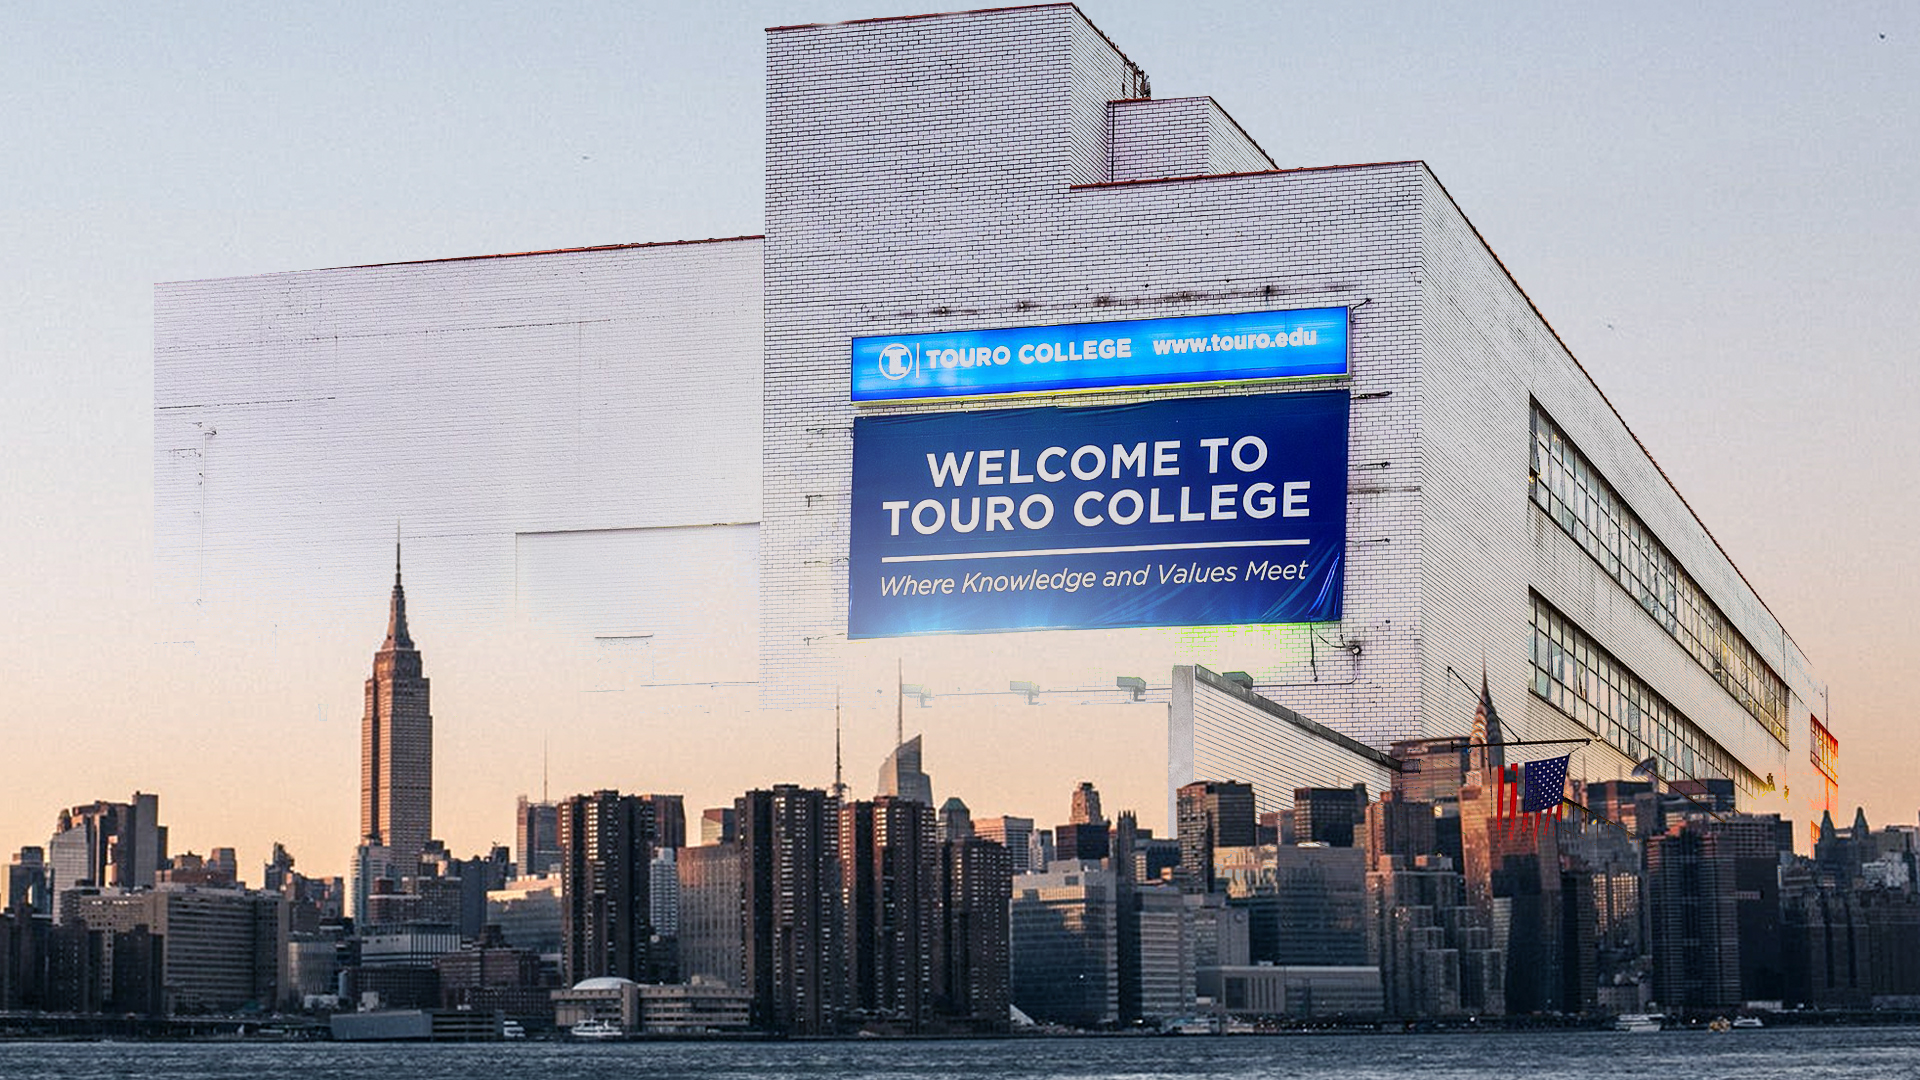 Touro_College_campus_banner_color_2020